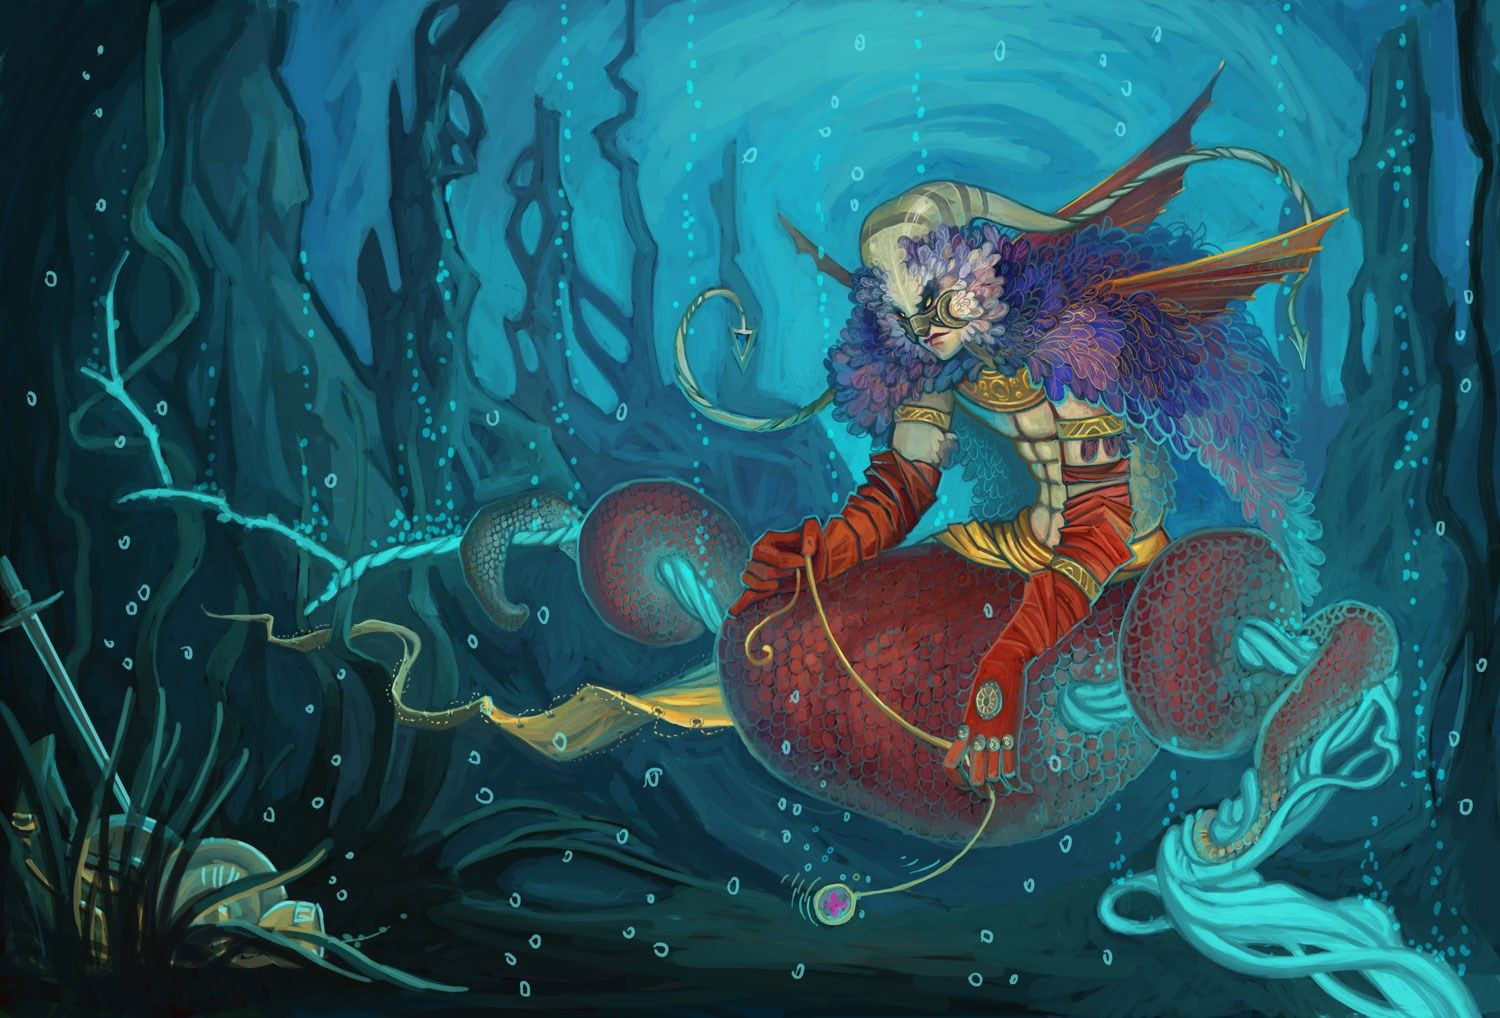 1854951 Artistic Category Computer Wallpaper For Artistic Ololoshenka Mermaid Wallpapers Computer Wallpaper Mermaid Background